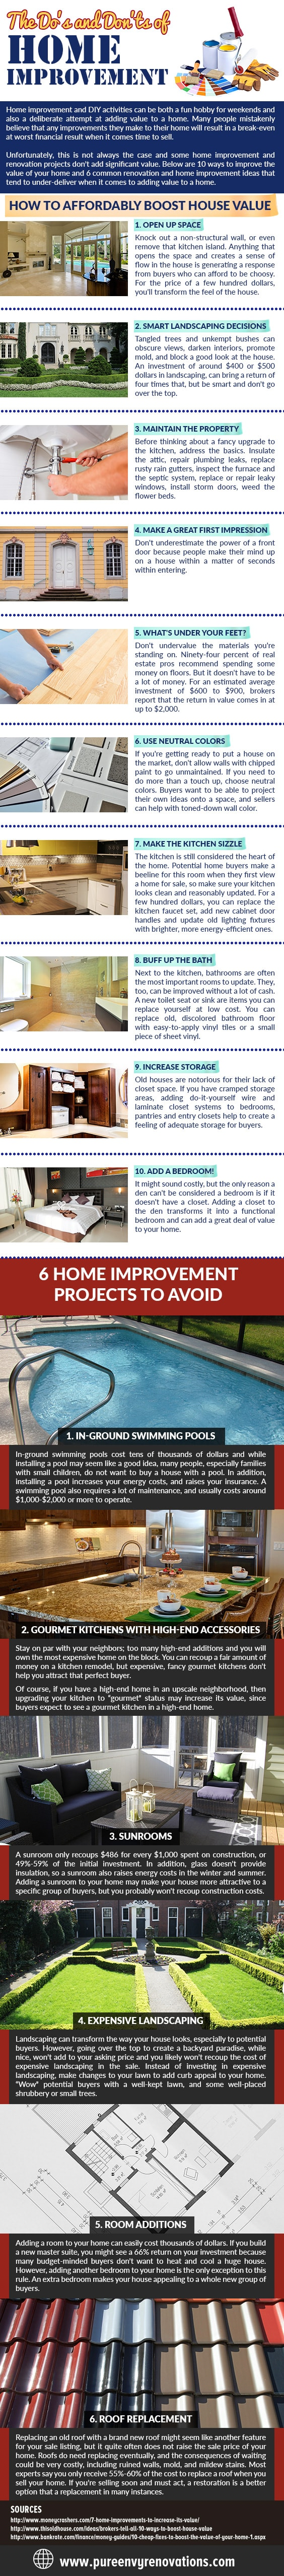 The Do's and Don'ts of Home Renovations